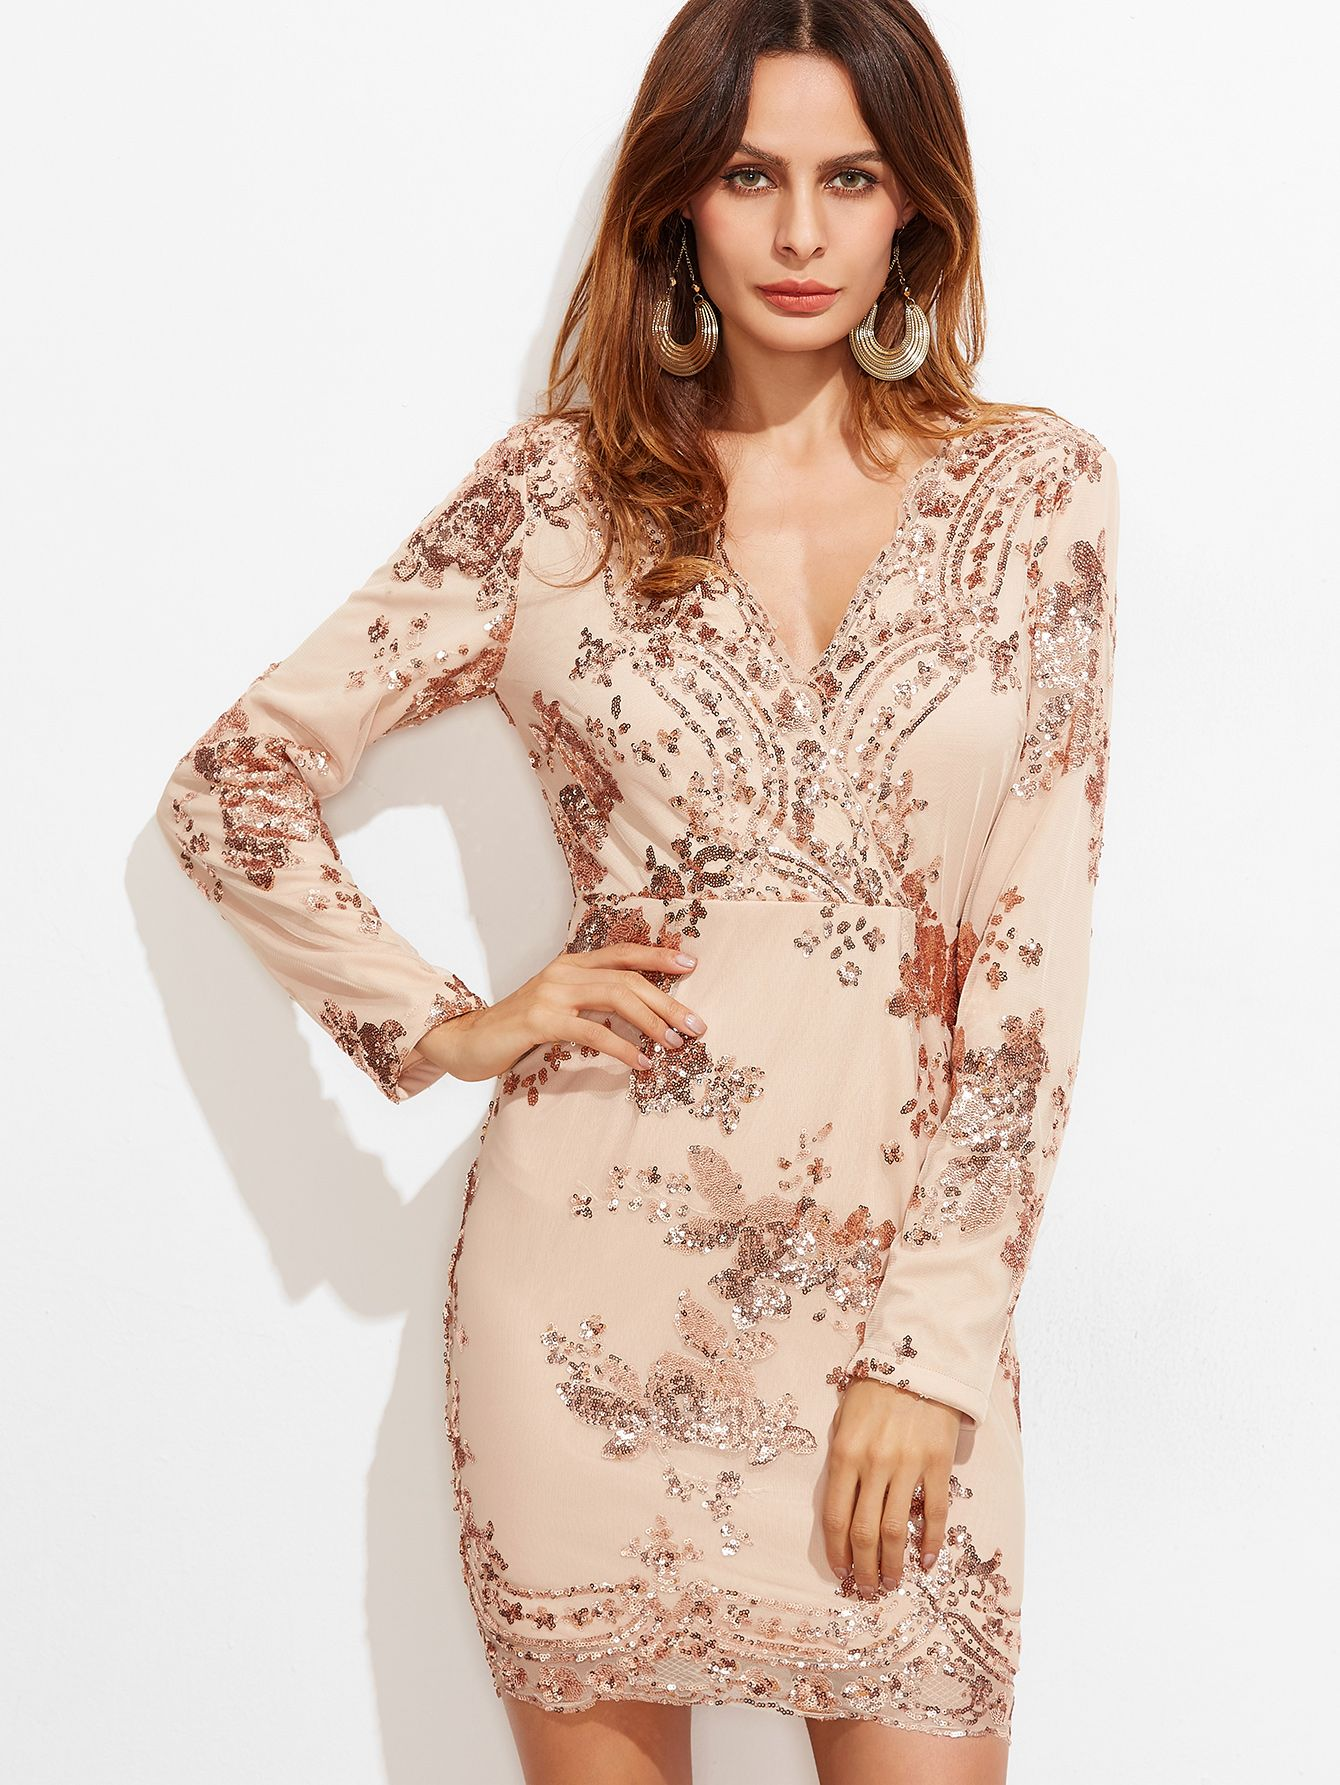 Pink Surplice Front Embroidered Sequin Dress | Sequins, Dress ...